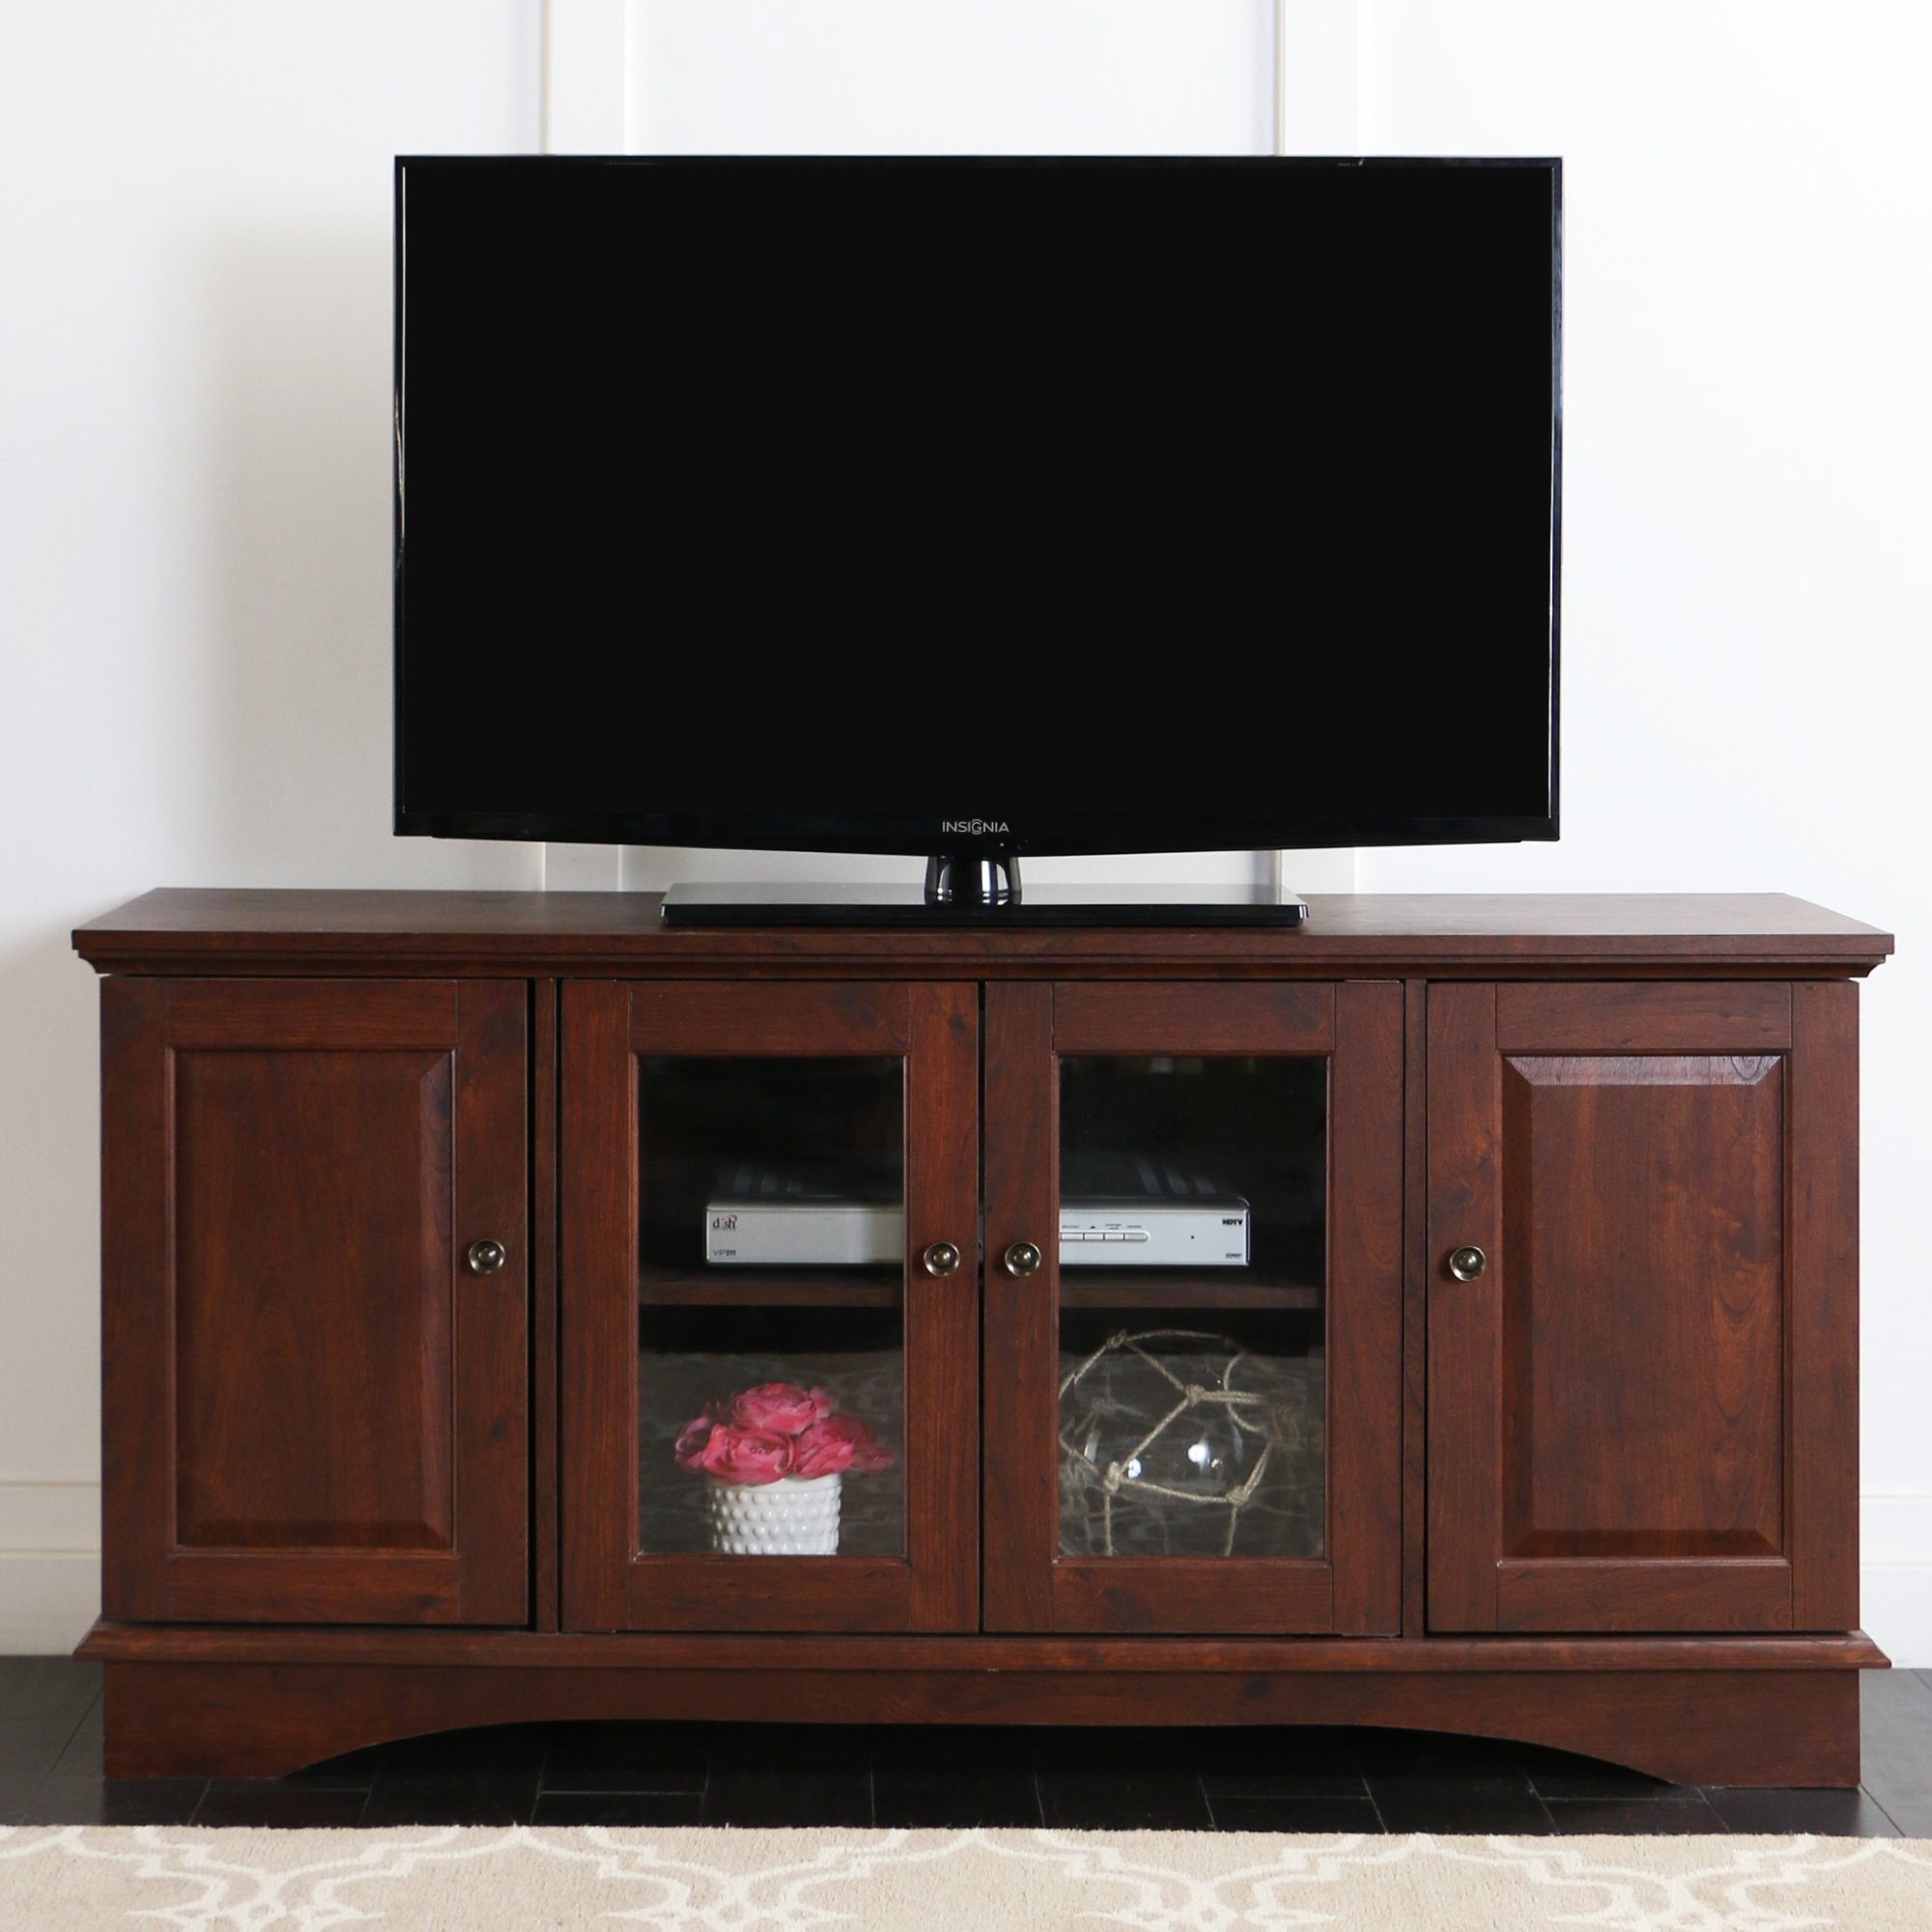 Walker Edison 52'' Wood Storage TV Stand Console, Brown